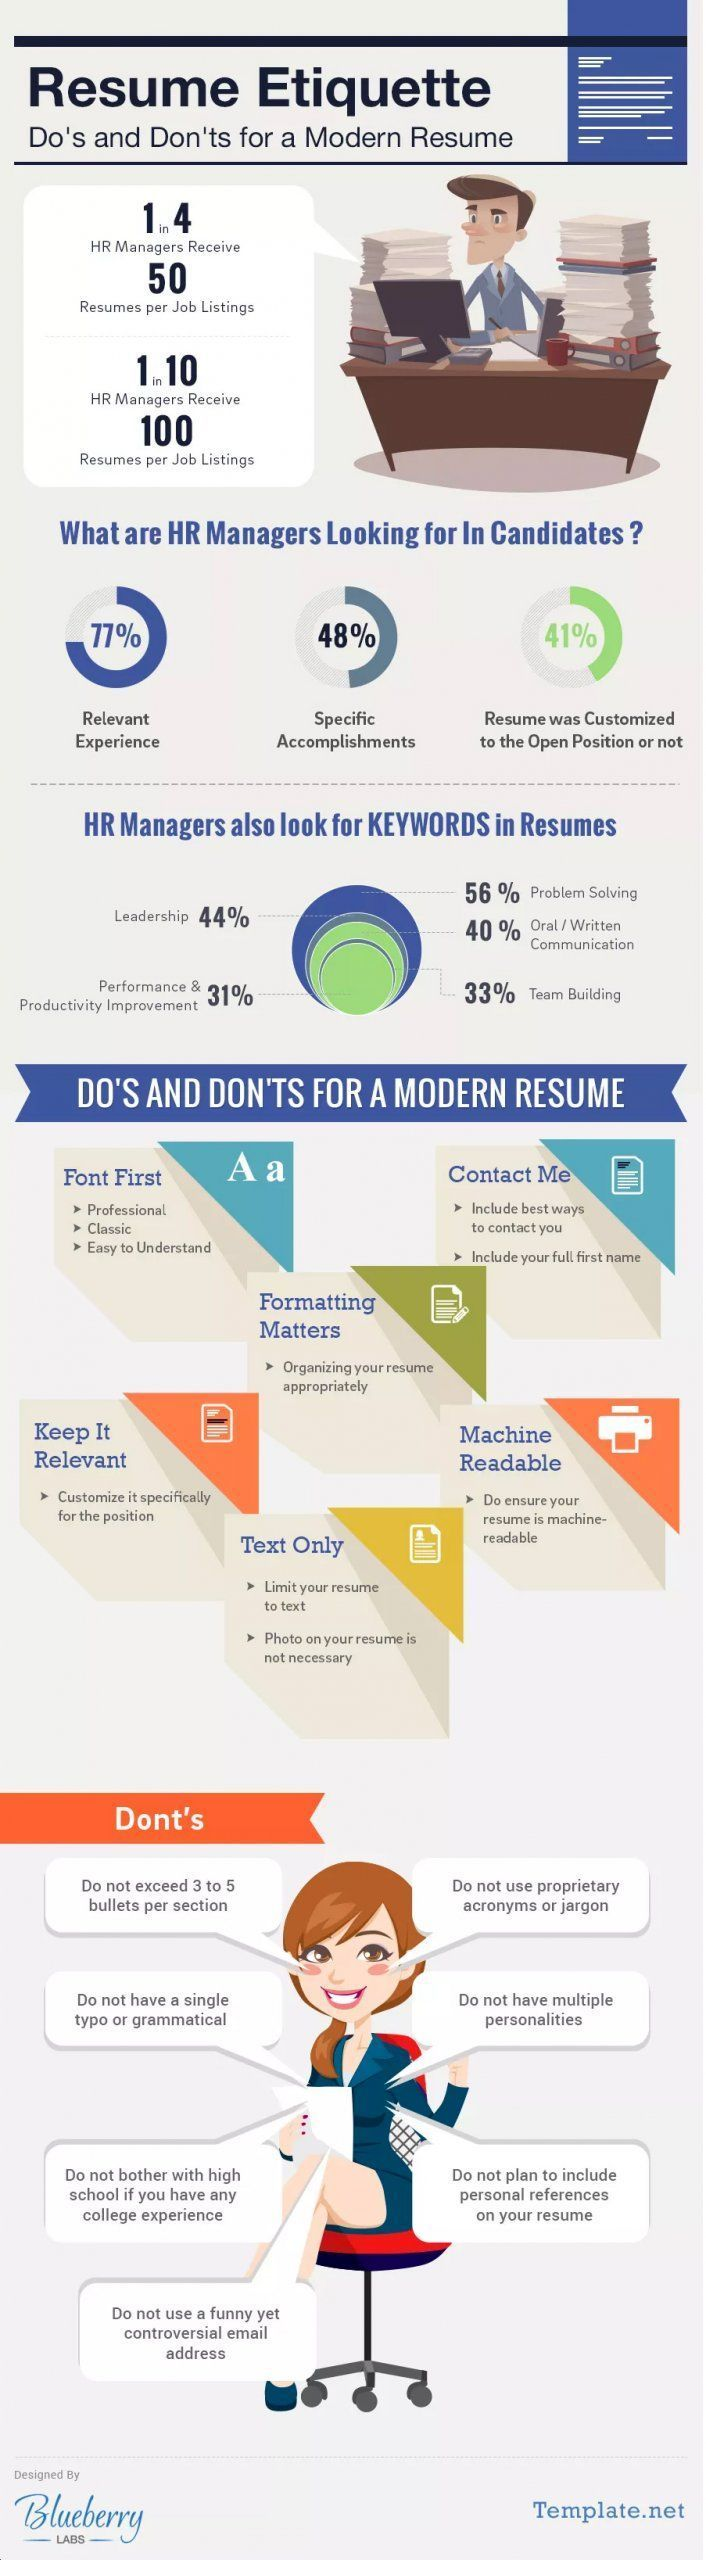 Resume Etiquette: Do's and Dont's for a Modern Resume | Resume Tips